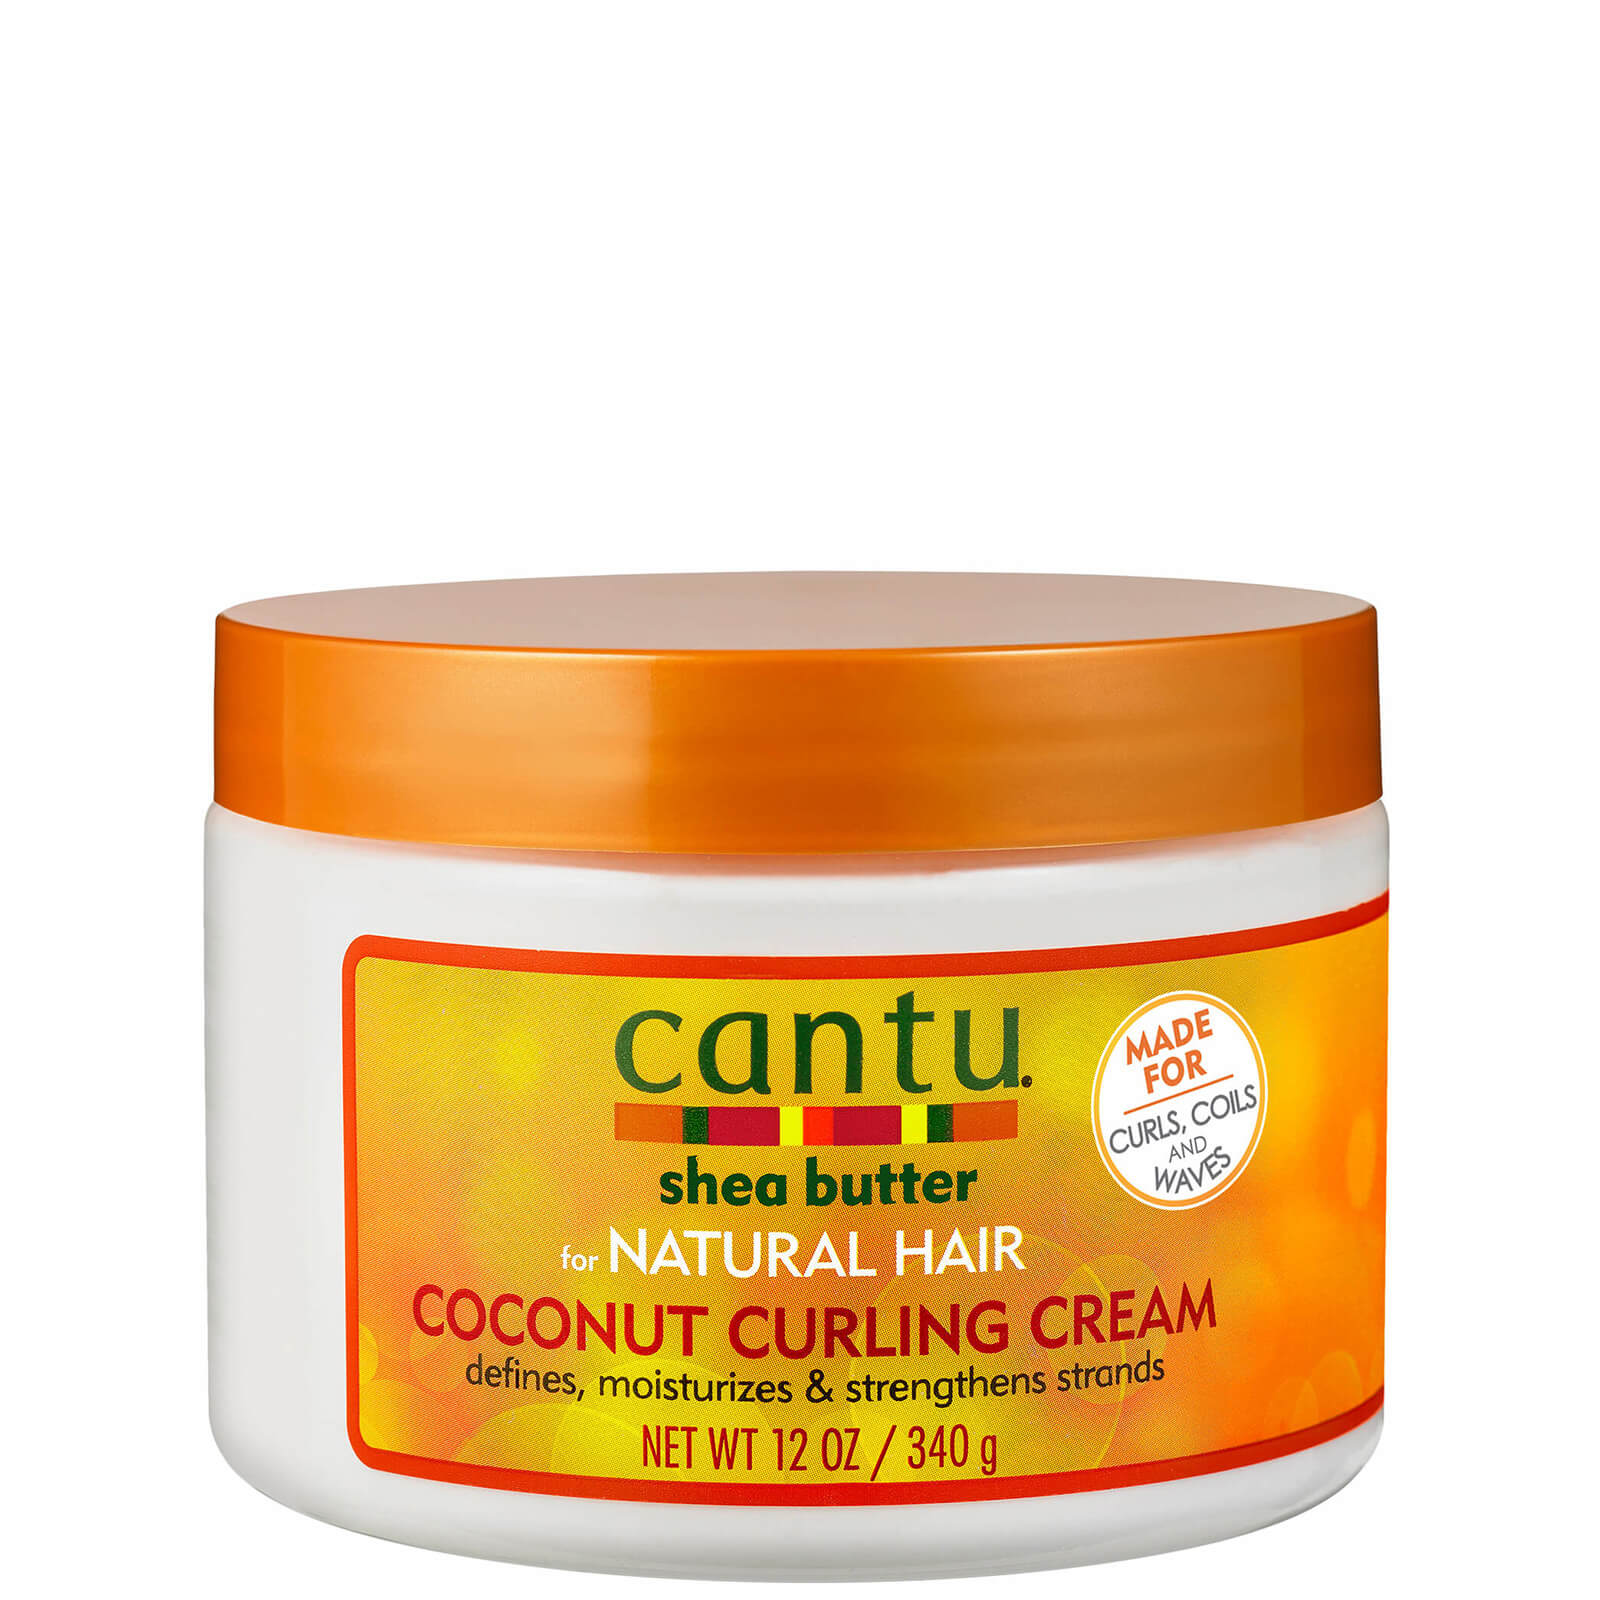 Купить Cantu Shea Butter for Natural Hair Coconut Curling Cream 340 g